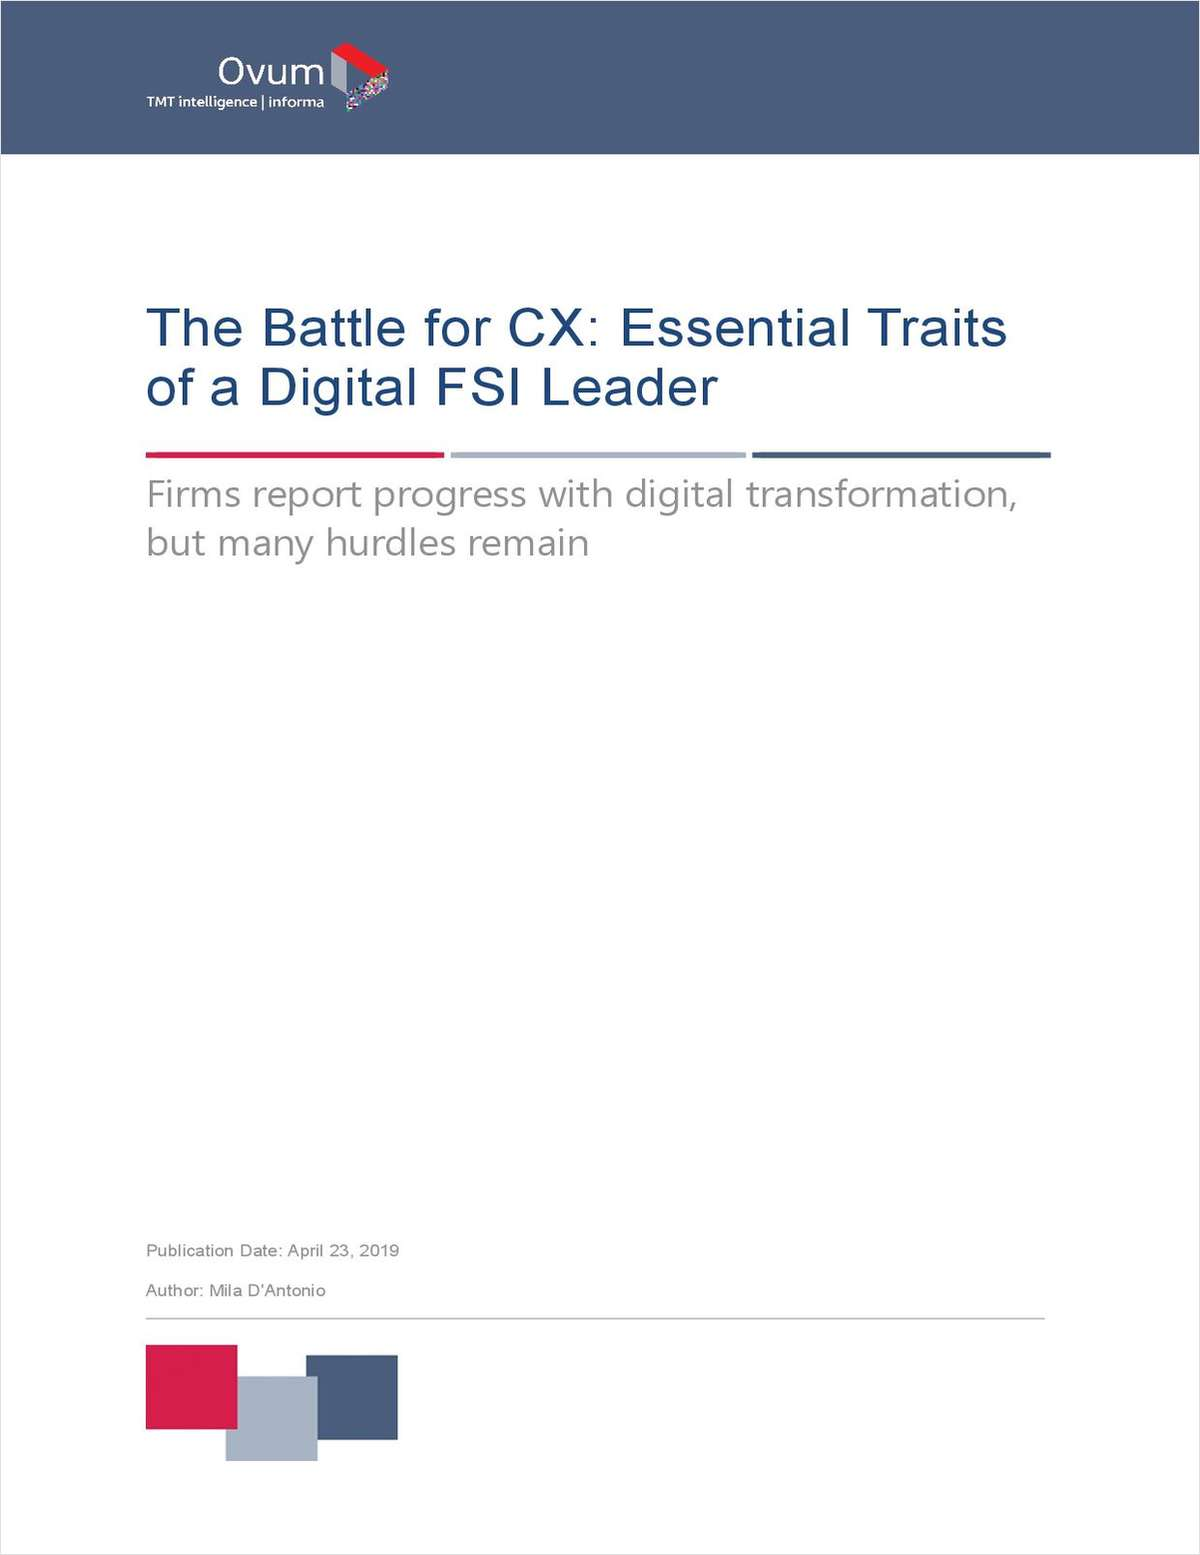 The Battle for CX: Essential Traits of a Digital FSI Leader